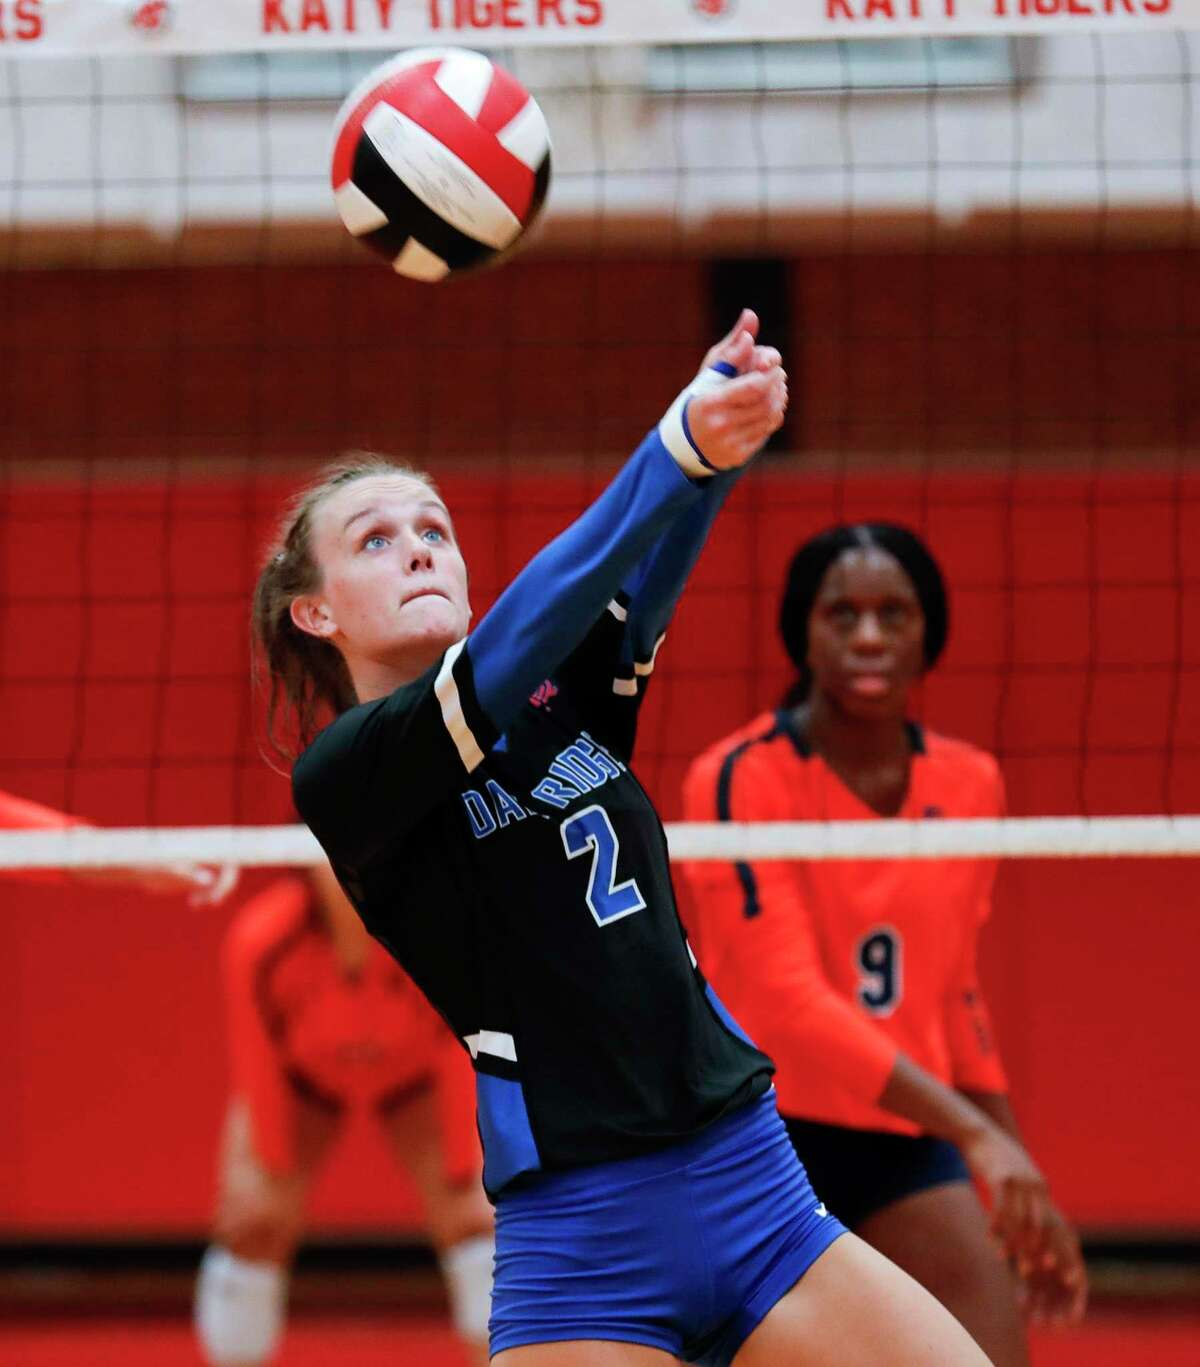 Oak Ridge's Avery Fowler (2) makes a pass during a match in the Katy/Cy-Fair Tournament at Katy High School, Friday, Aug. 13, 2021, in Katy.